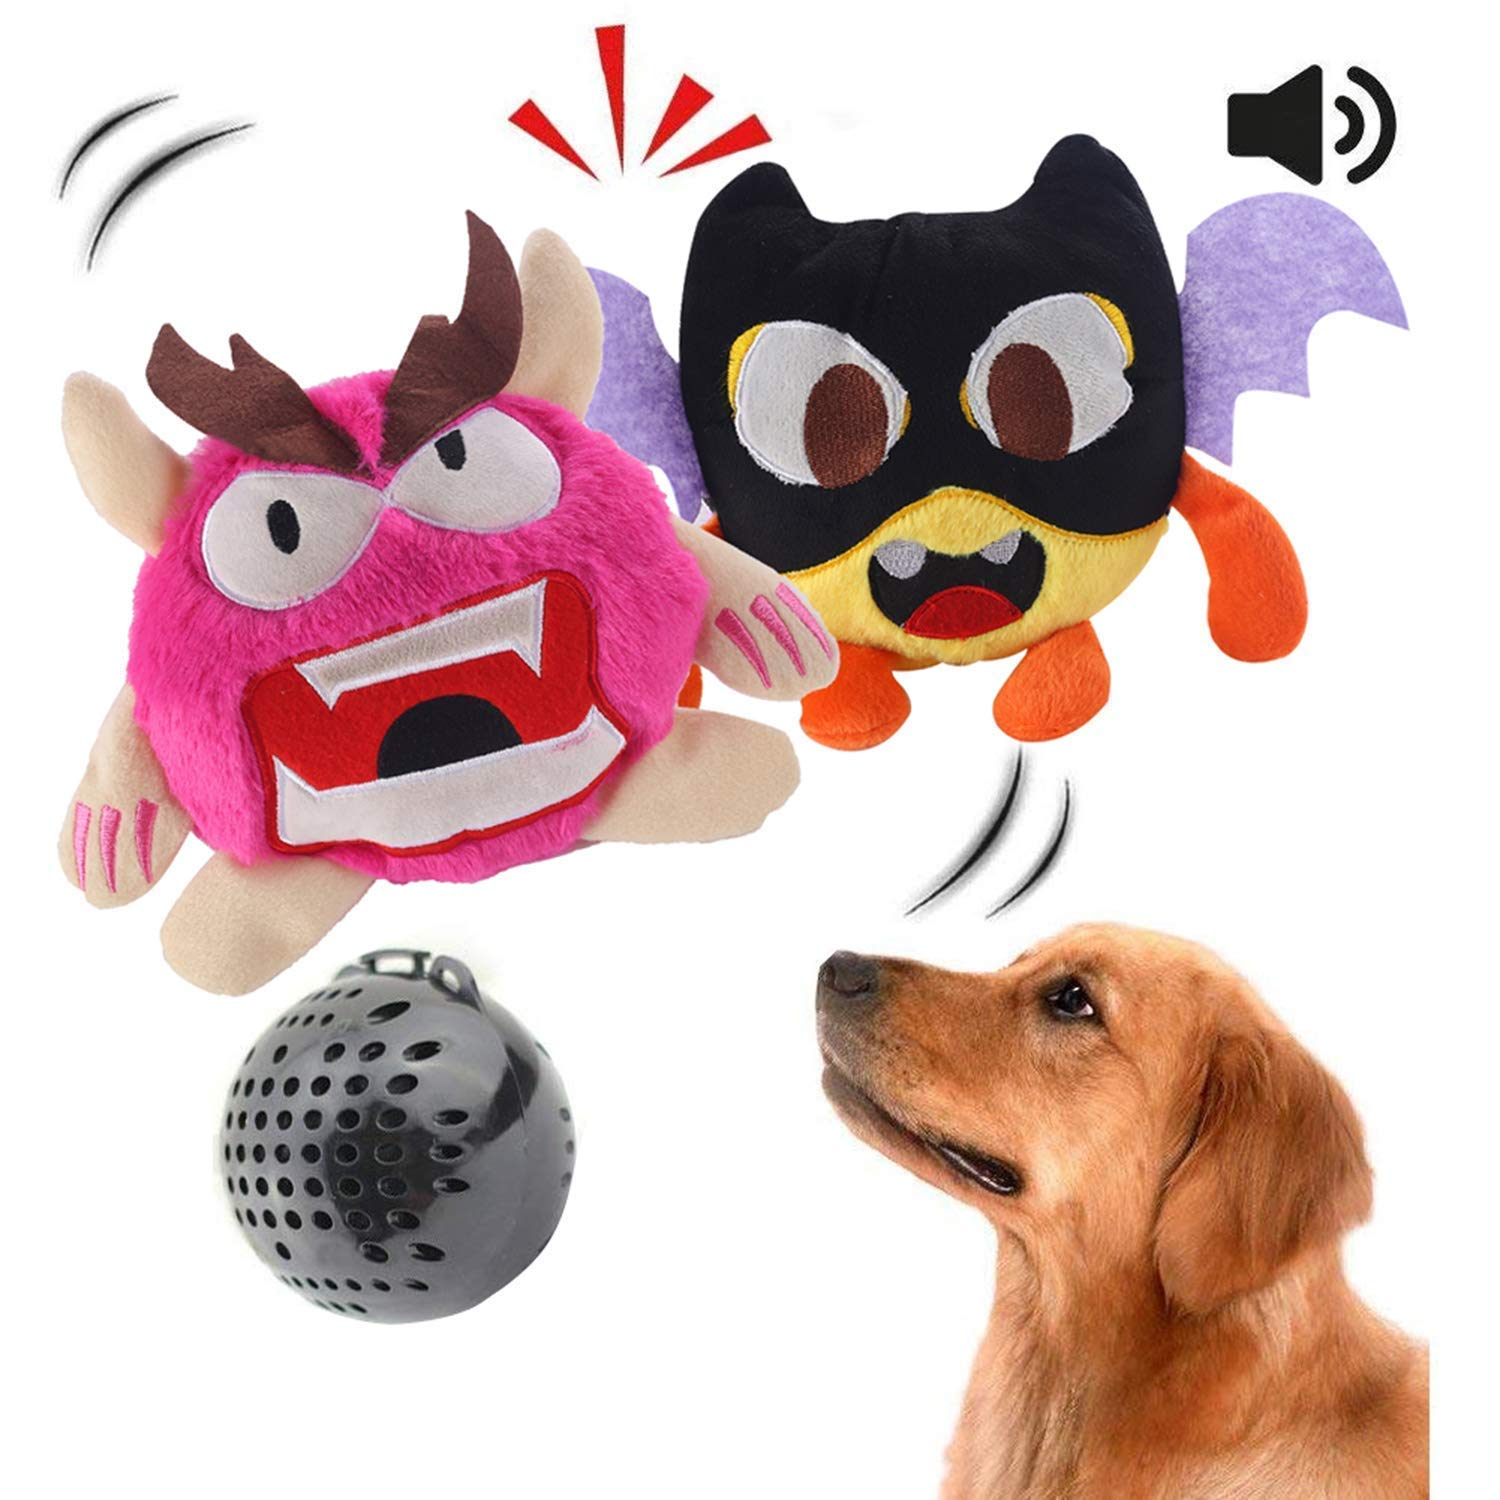 NEILDEN Interactive Dog Toys, Giggle Plush Dog Toy, Crazy Shake Bounce Boredom Toys for Small to Medium Dogs to Exercise Entertain Boredom Training for Dogs (Two Plush Toys+Squea by NEILDEN